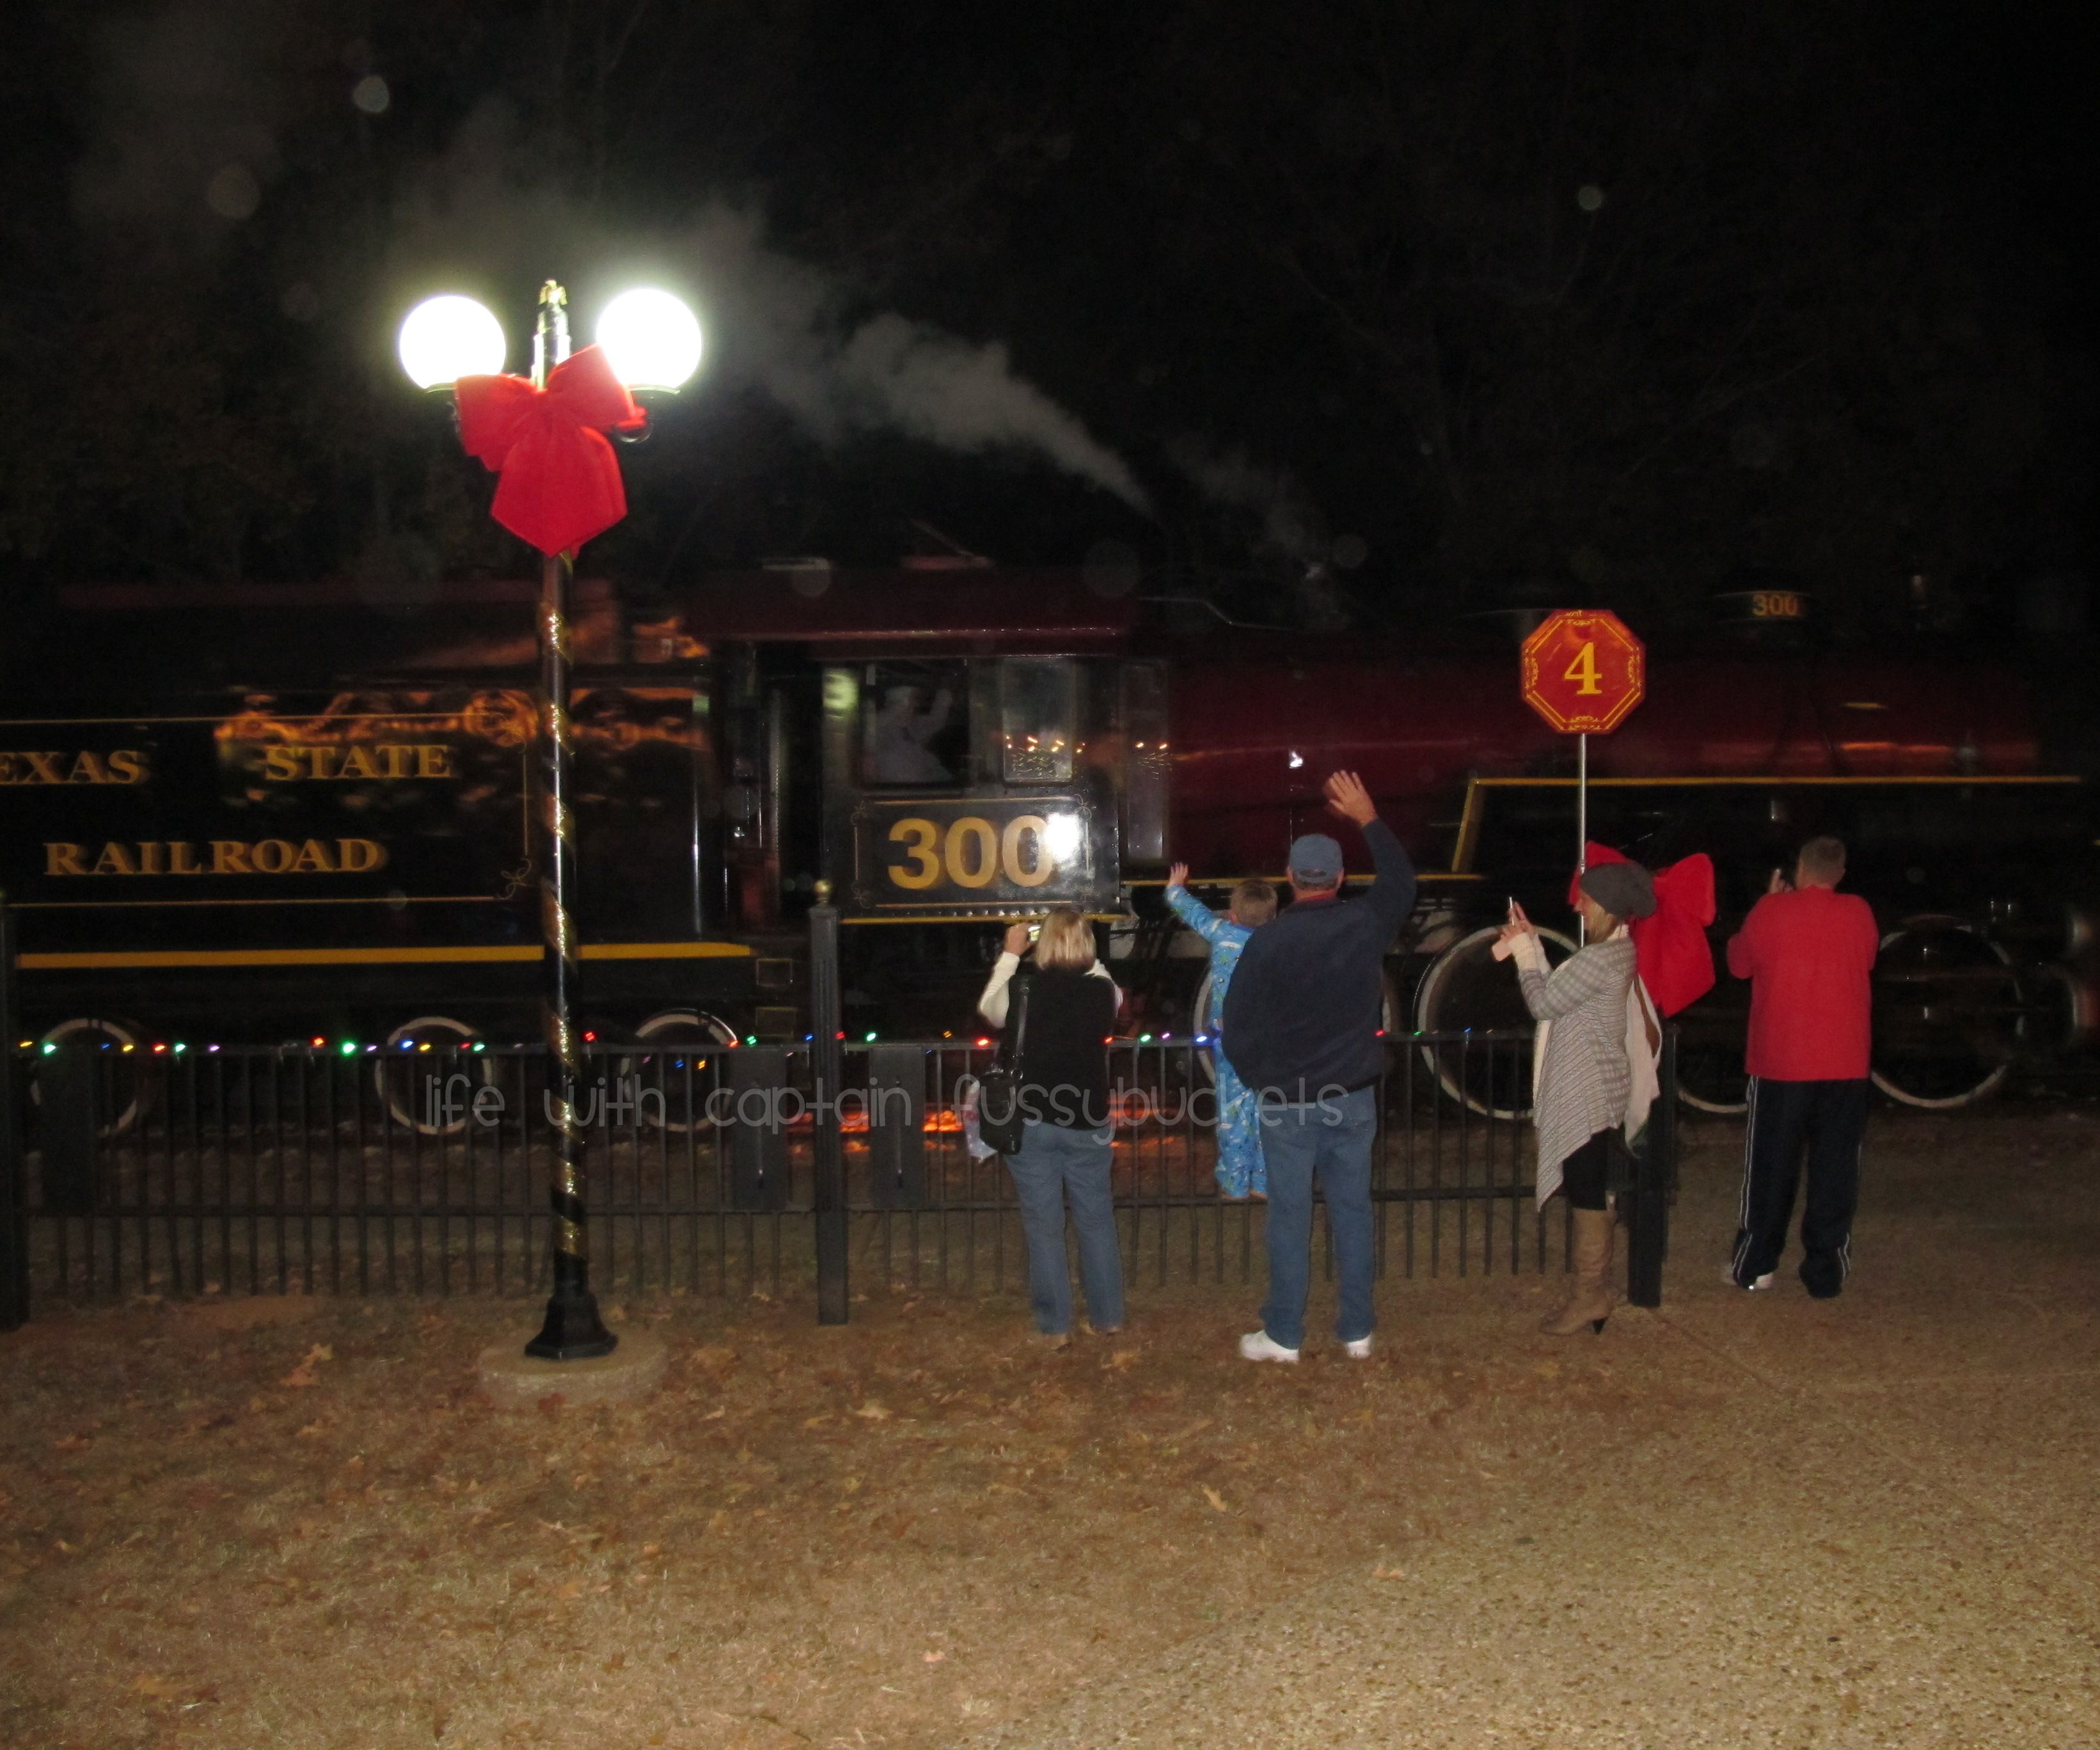 The polar express train ride in texas images thecelebritypix